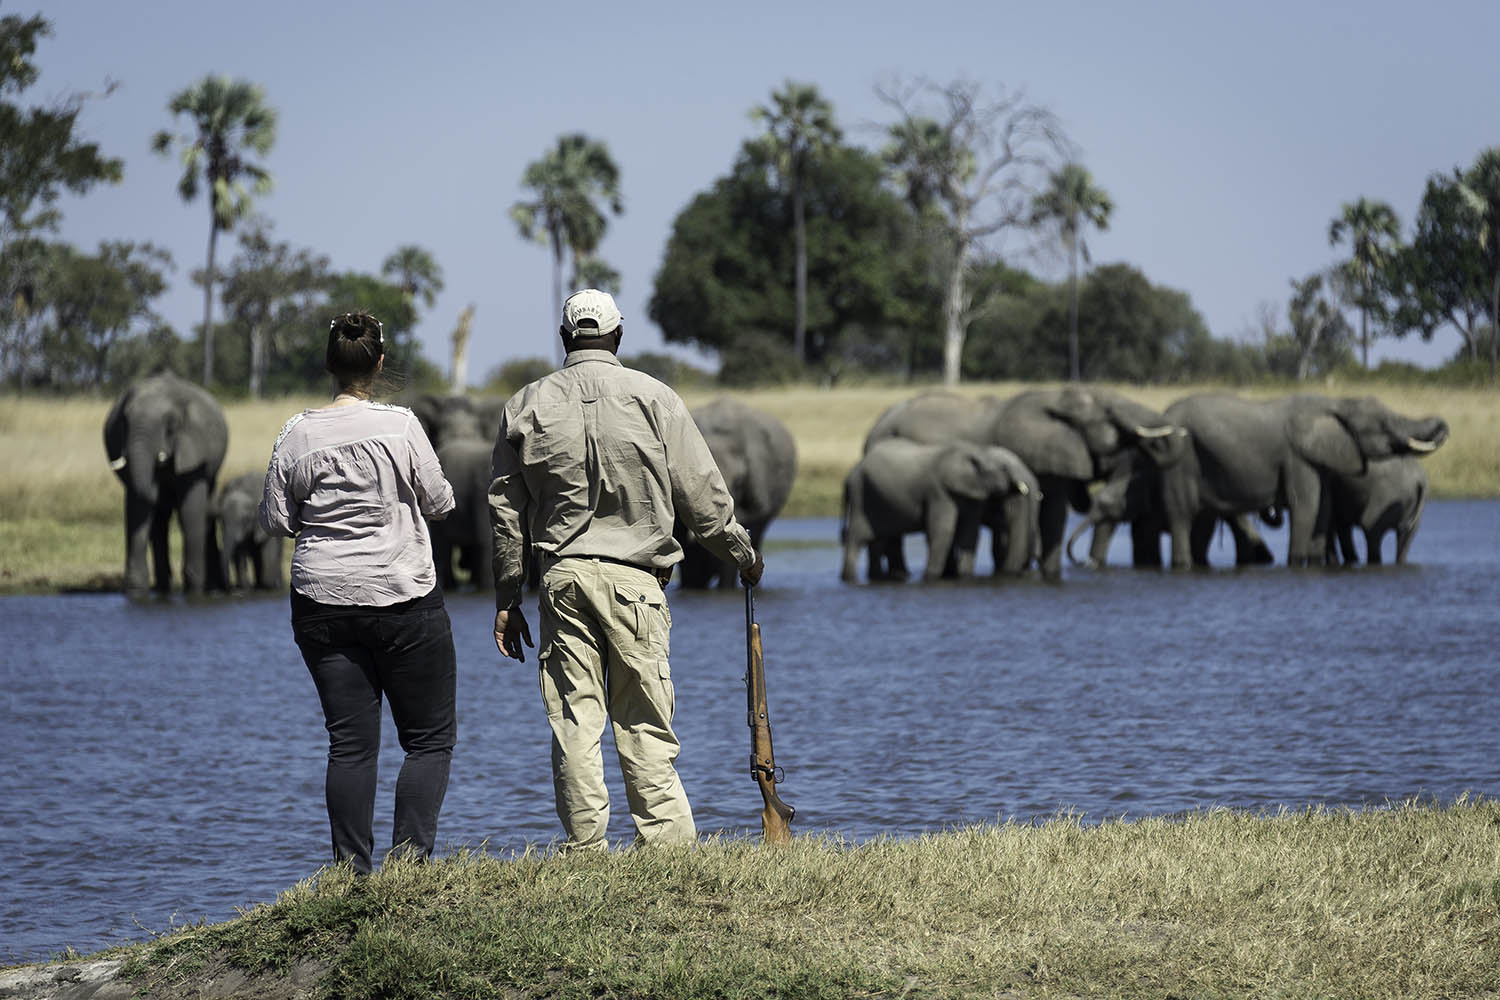 davisons camp hwange-national-park-zimbabwe-lodges-wilderness-activities-game-walk-elephants